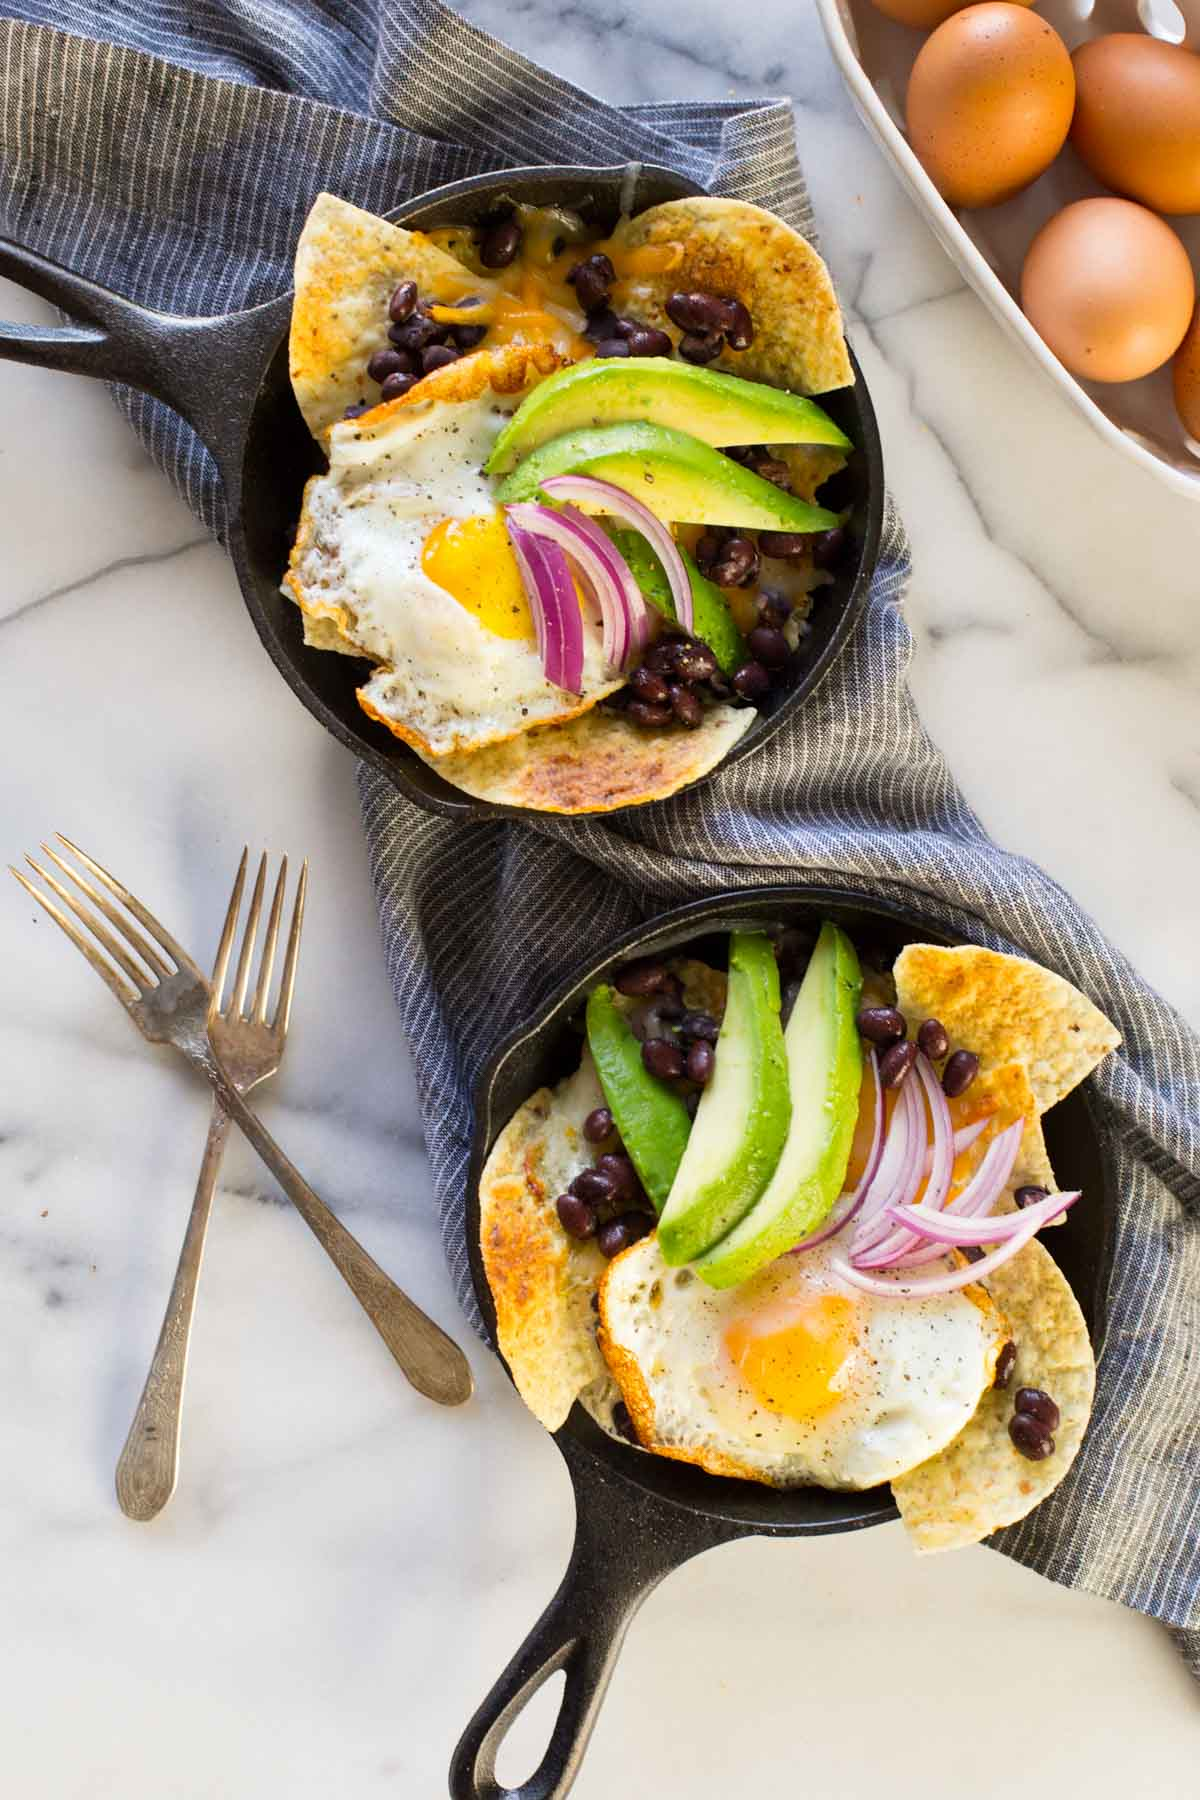 Two Breakfast Nacho Skillets topped with avocado slices and red onions, with two forks and a basket of eggs sitting next to the skillets.